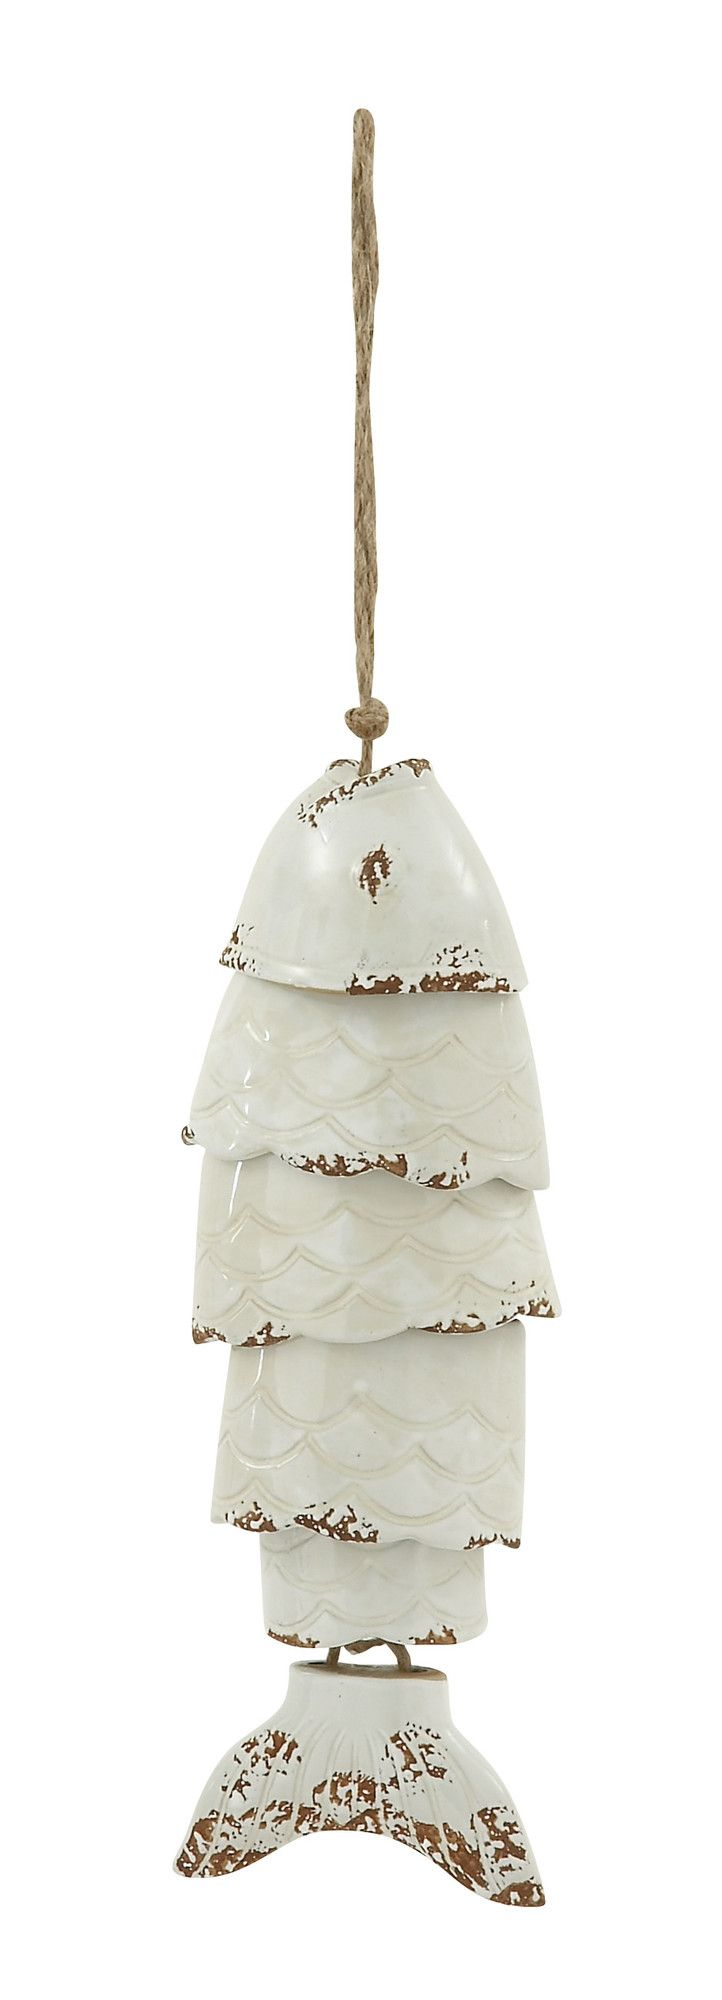 Features:  -Color: White.  -Material: Ceramic.  Product Type: -Wind chime and bell.  Color: -White.  Style: -Traditional.  Material: -Ceramic.  Theme: -Animal.  Holiday Theme: -Yes.  Holiday: -Father'